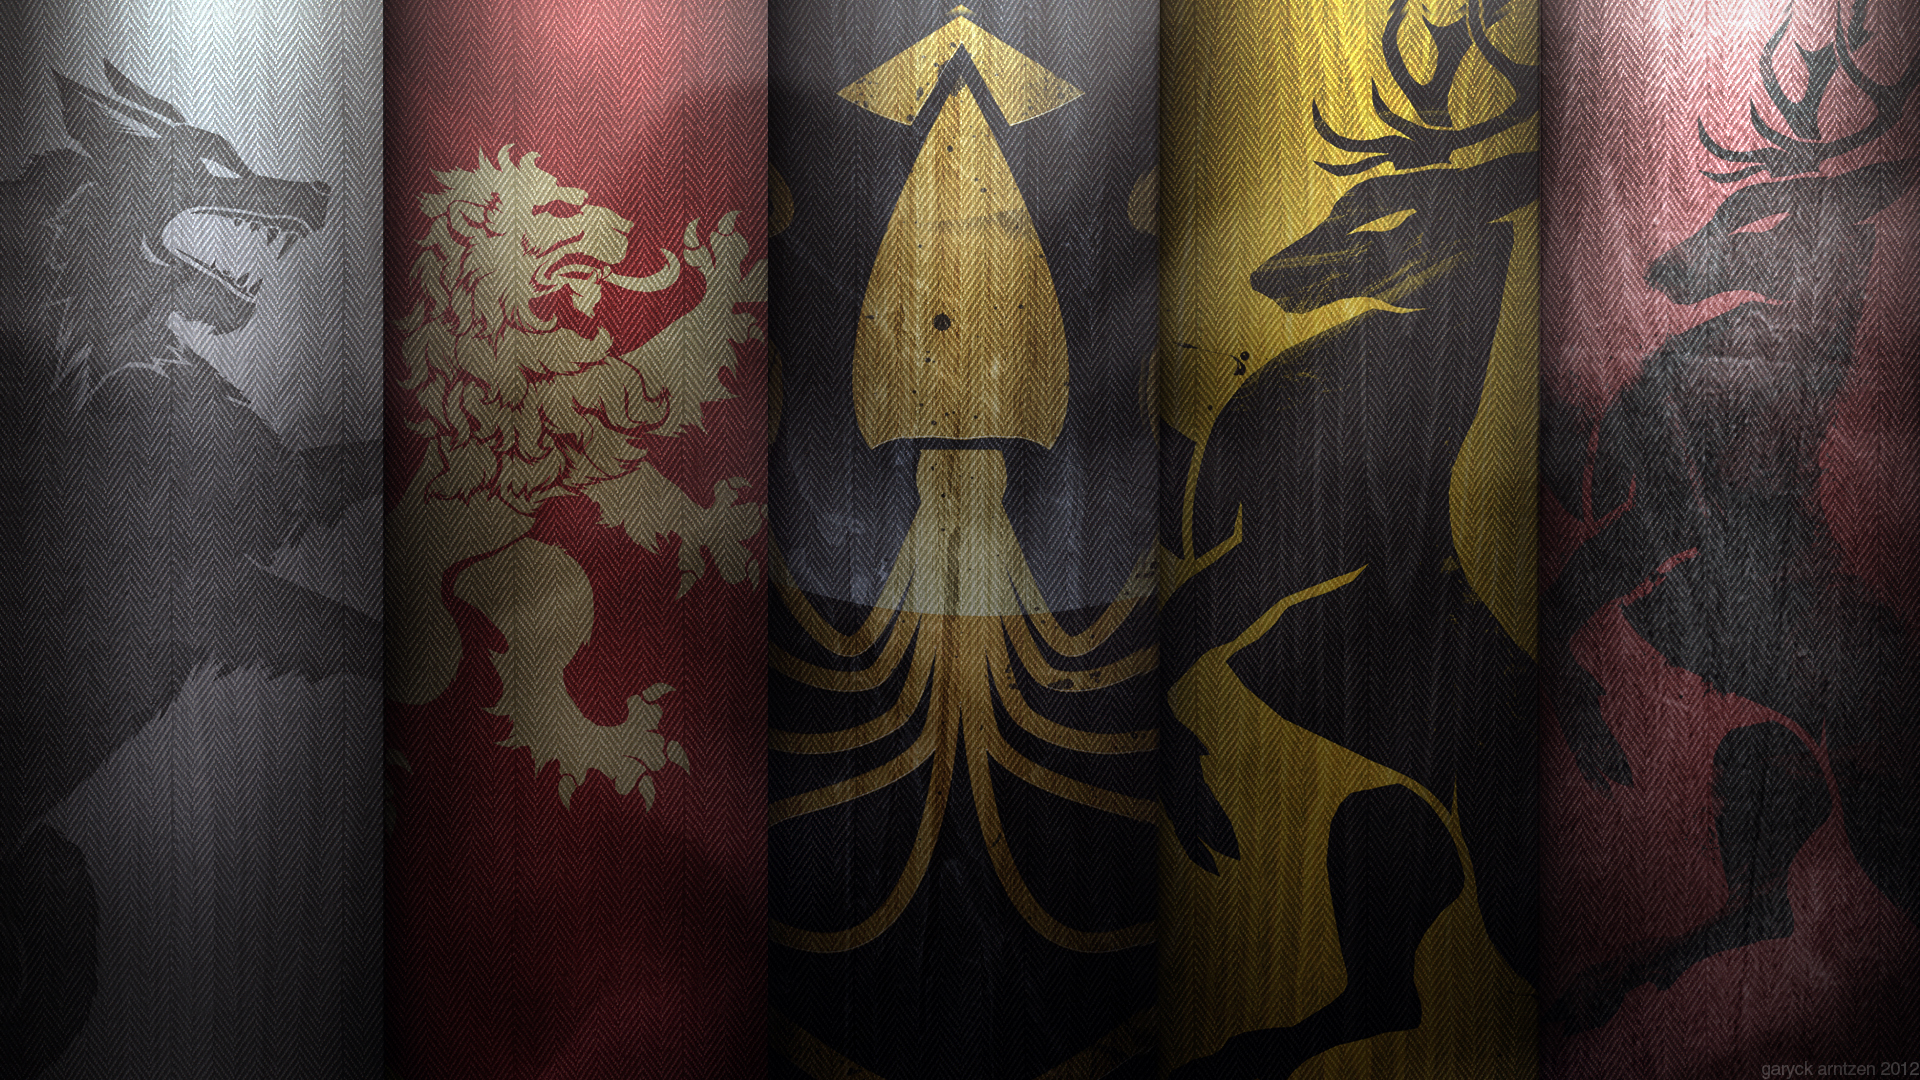 Game of Thrones Image   Wallpaper High Definition High Quality 1920x1080